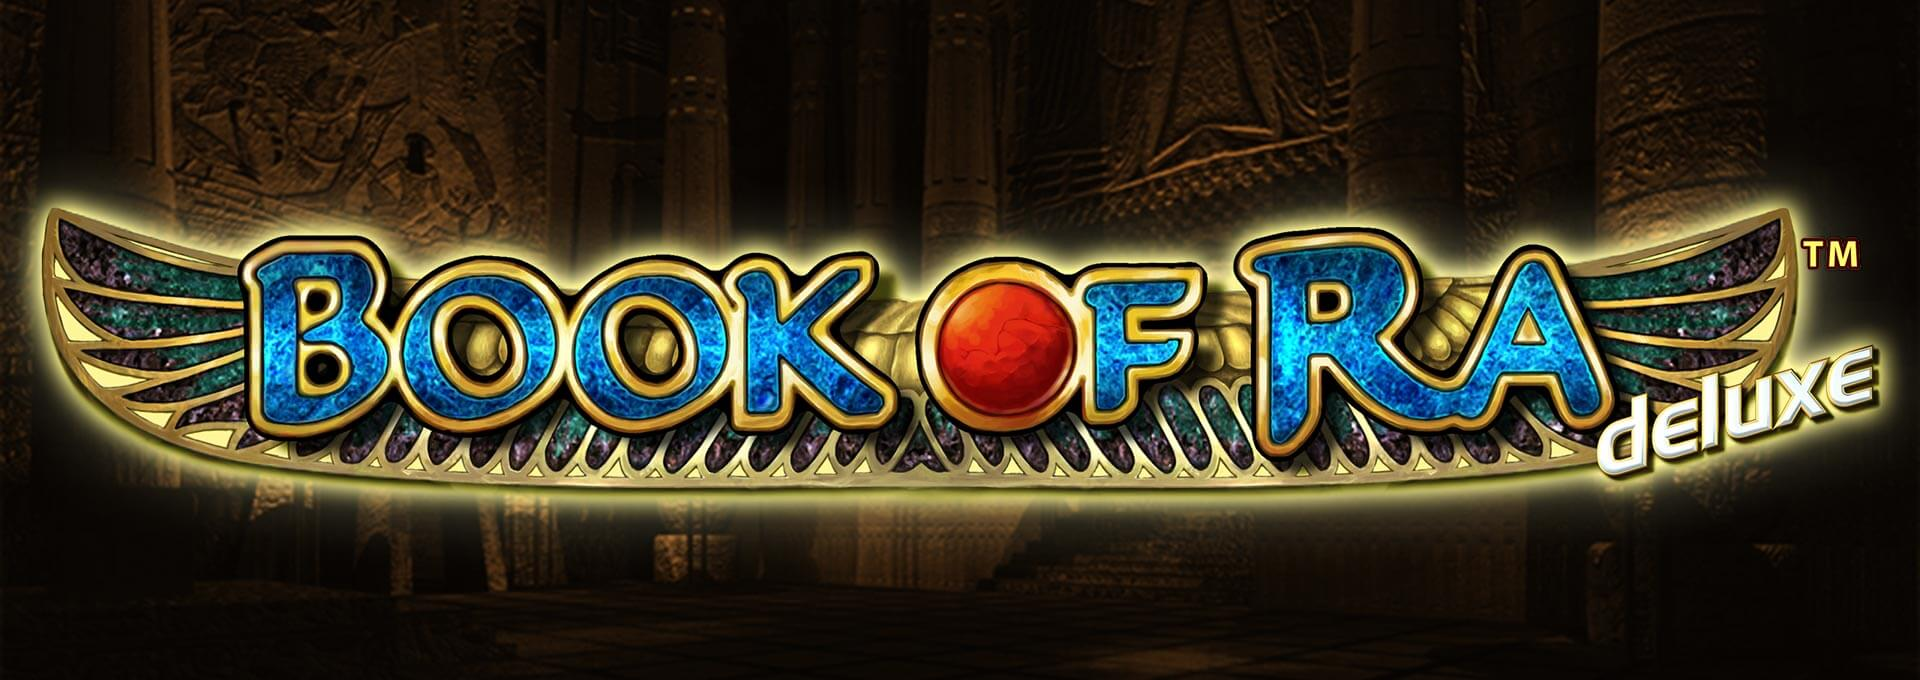 casino online spielen book of ra casino book of ra online